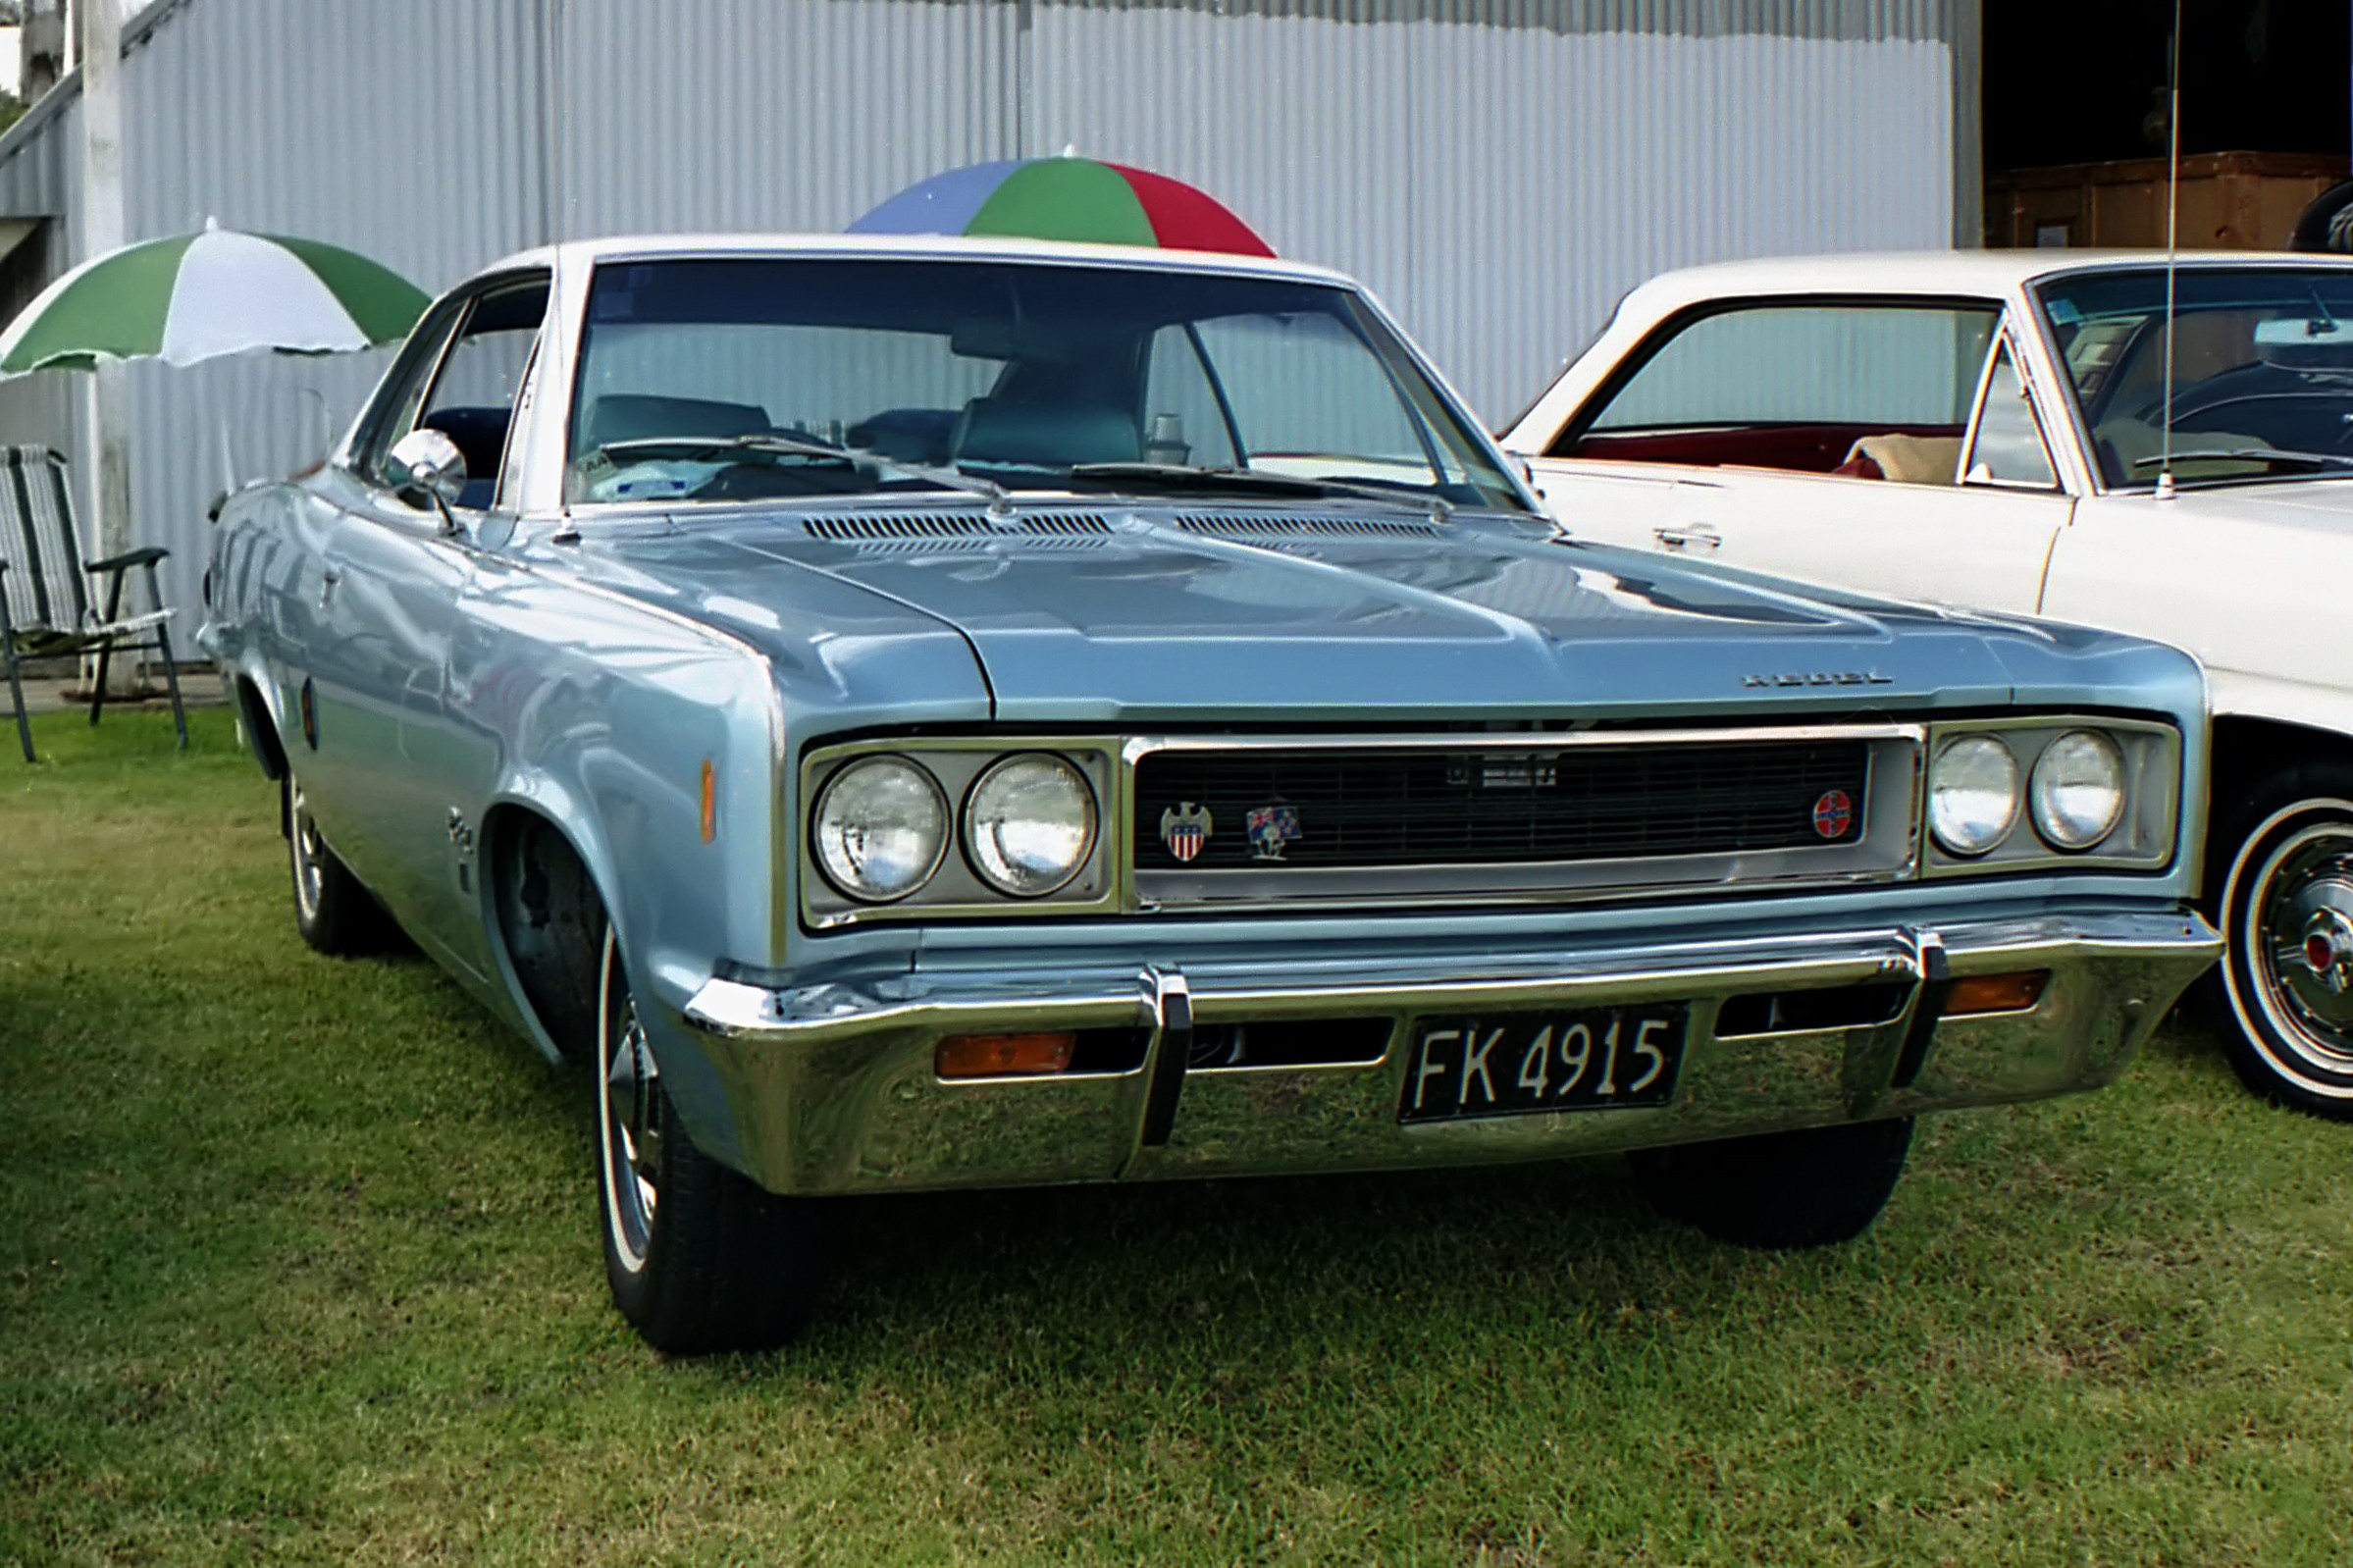 Amc rebel wikipedia 1968 rambler rebel 770 hardtop assembled in new zealand with right hand drive sciox Images